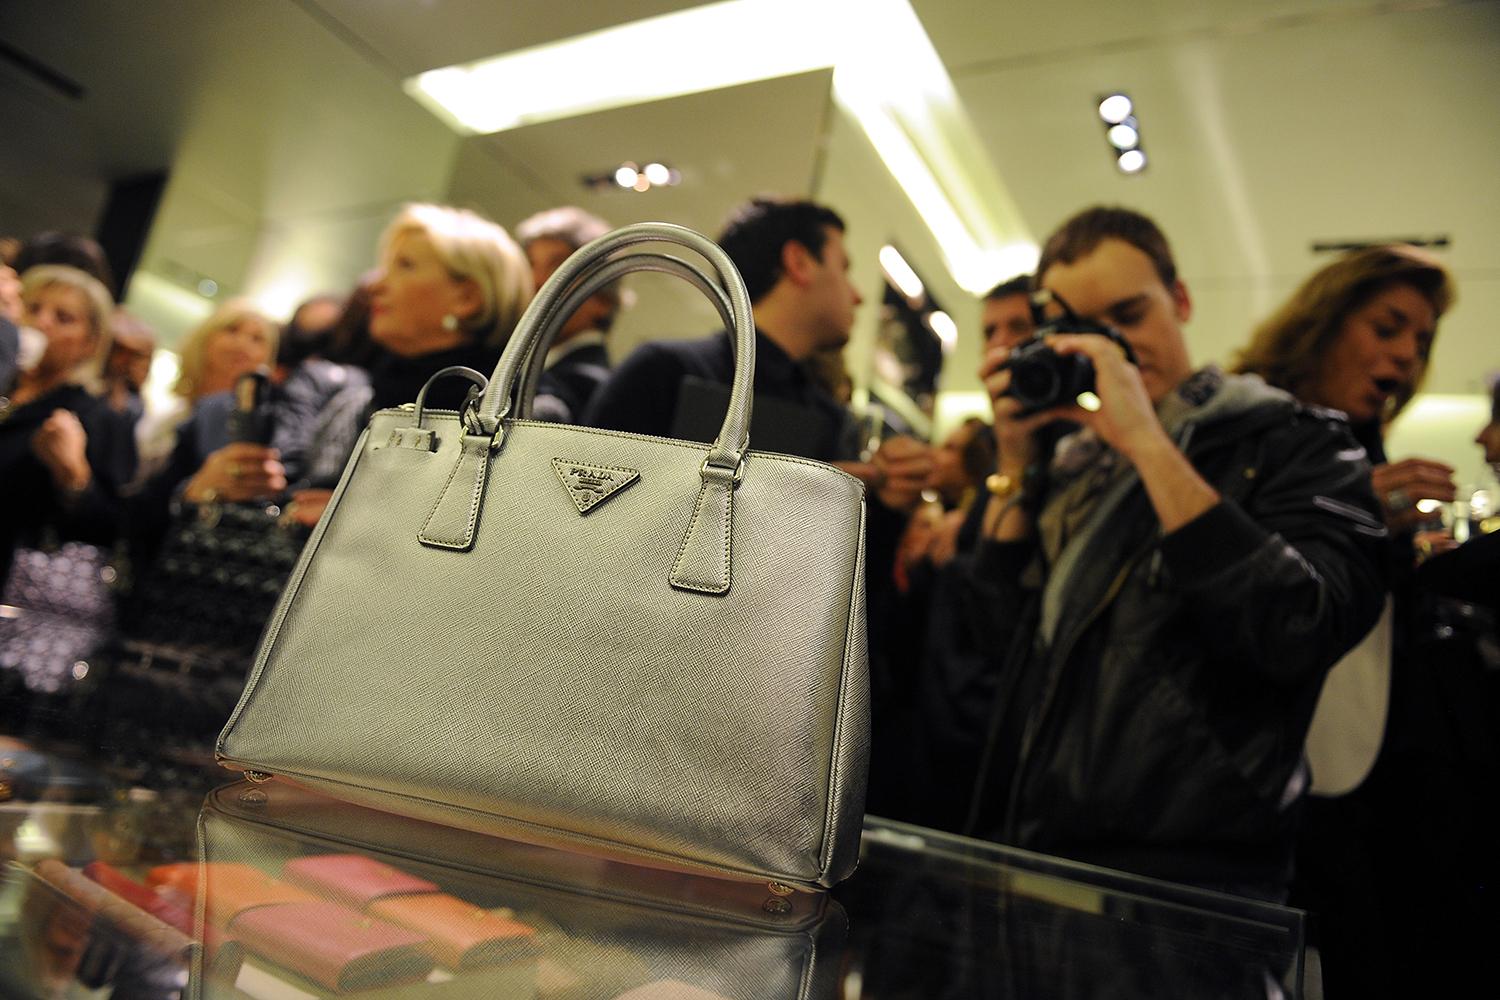 prada bag purple - It's Time to Admit That Prada's in Decline - Racked